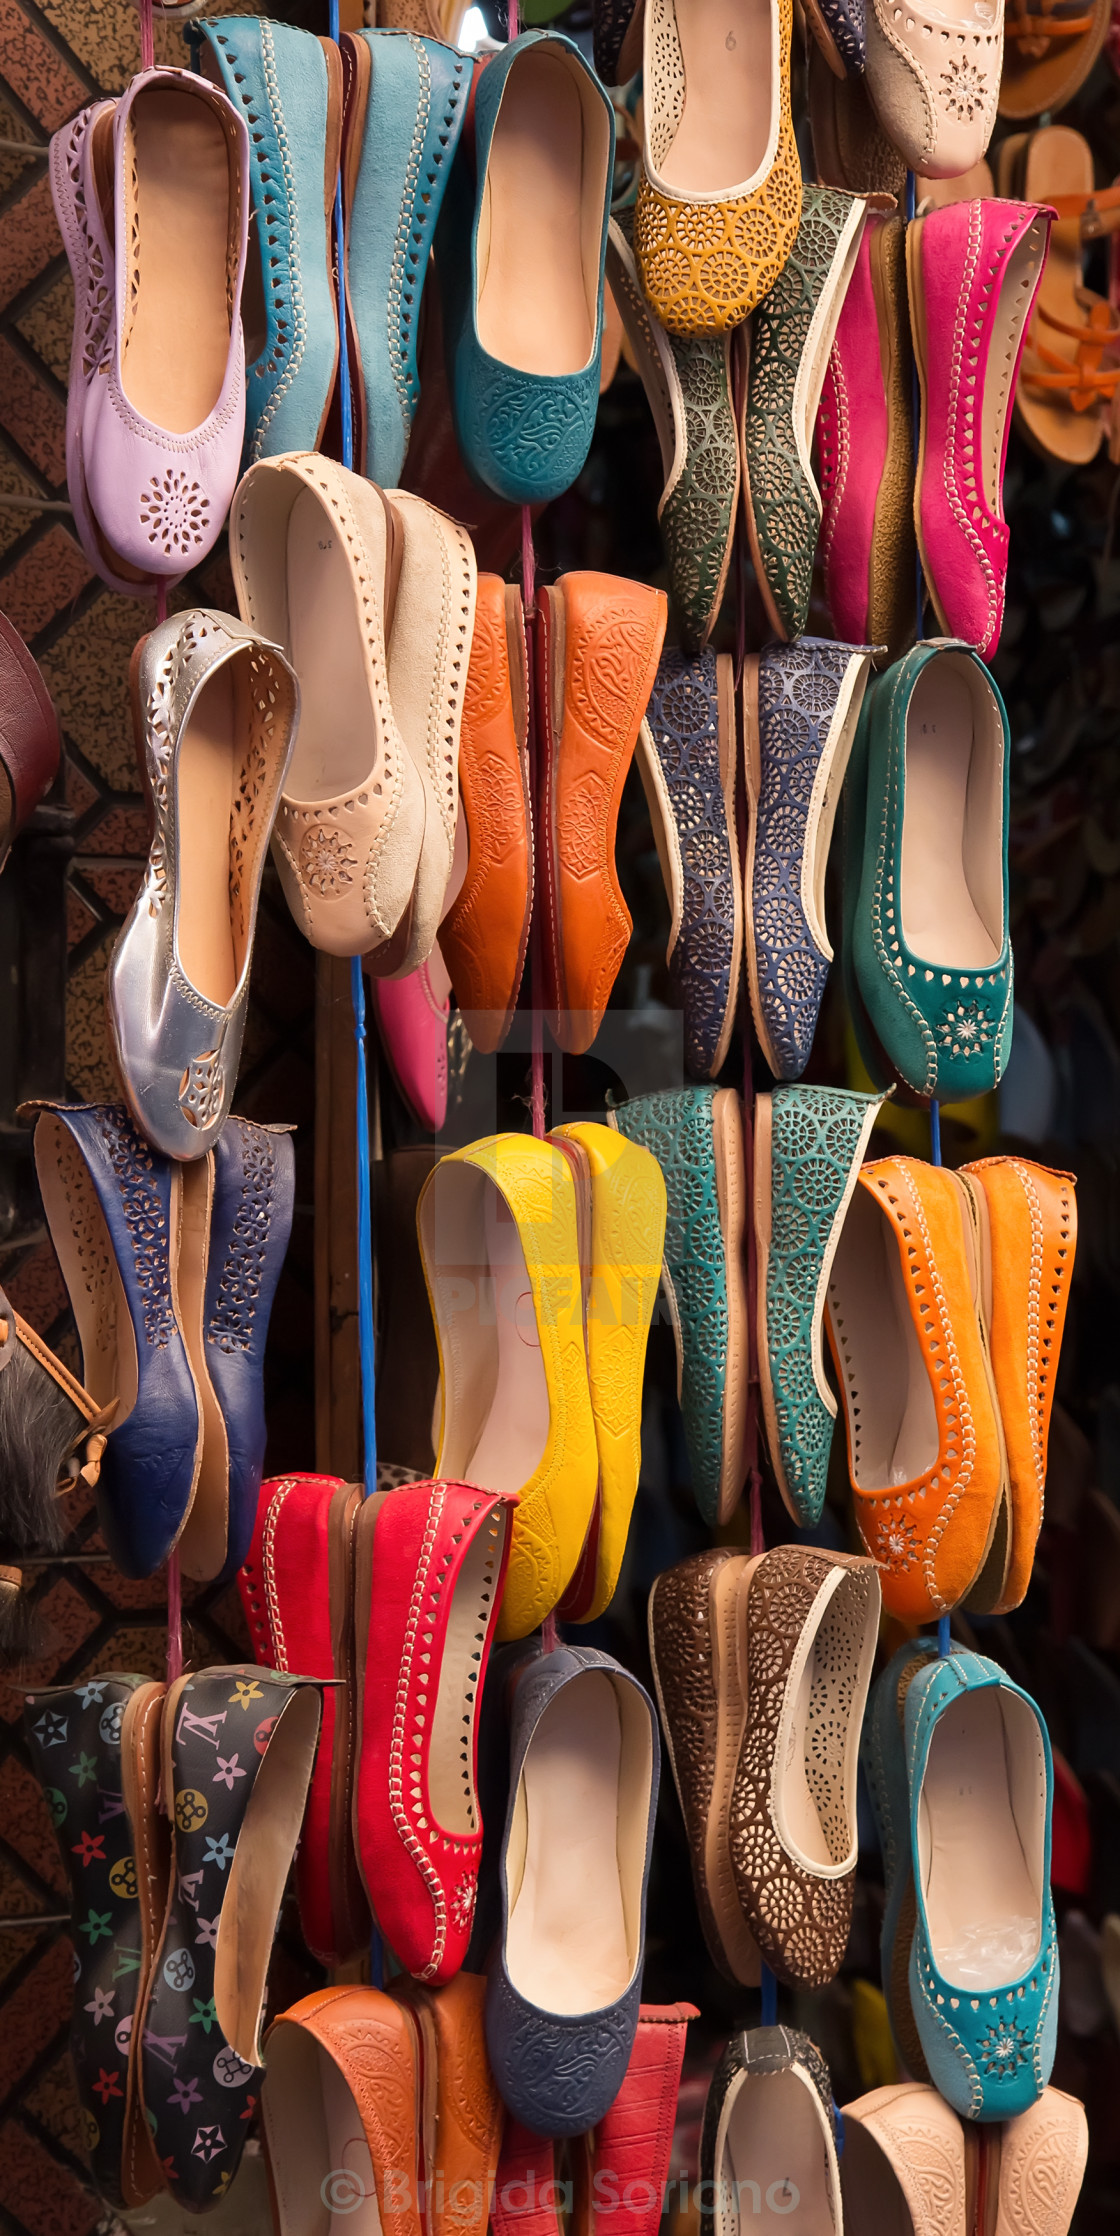 """Moroccan colourful leather shoes on display"" stock image"